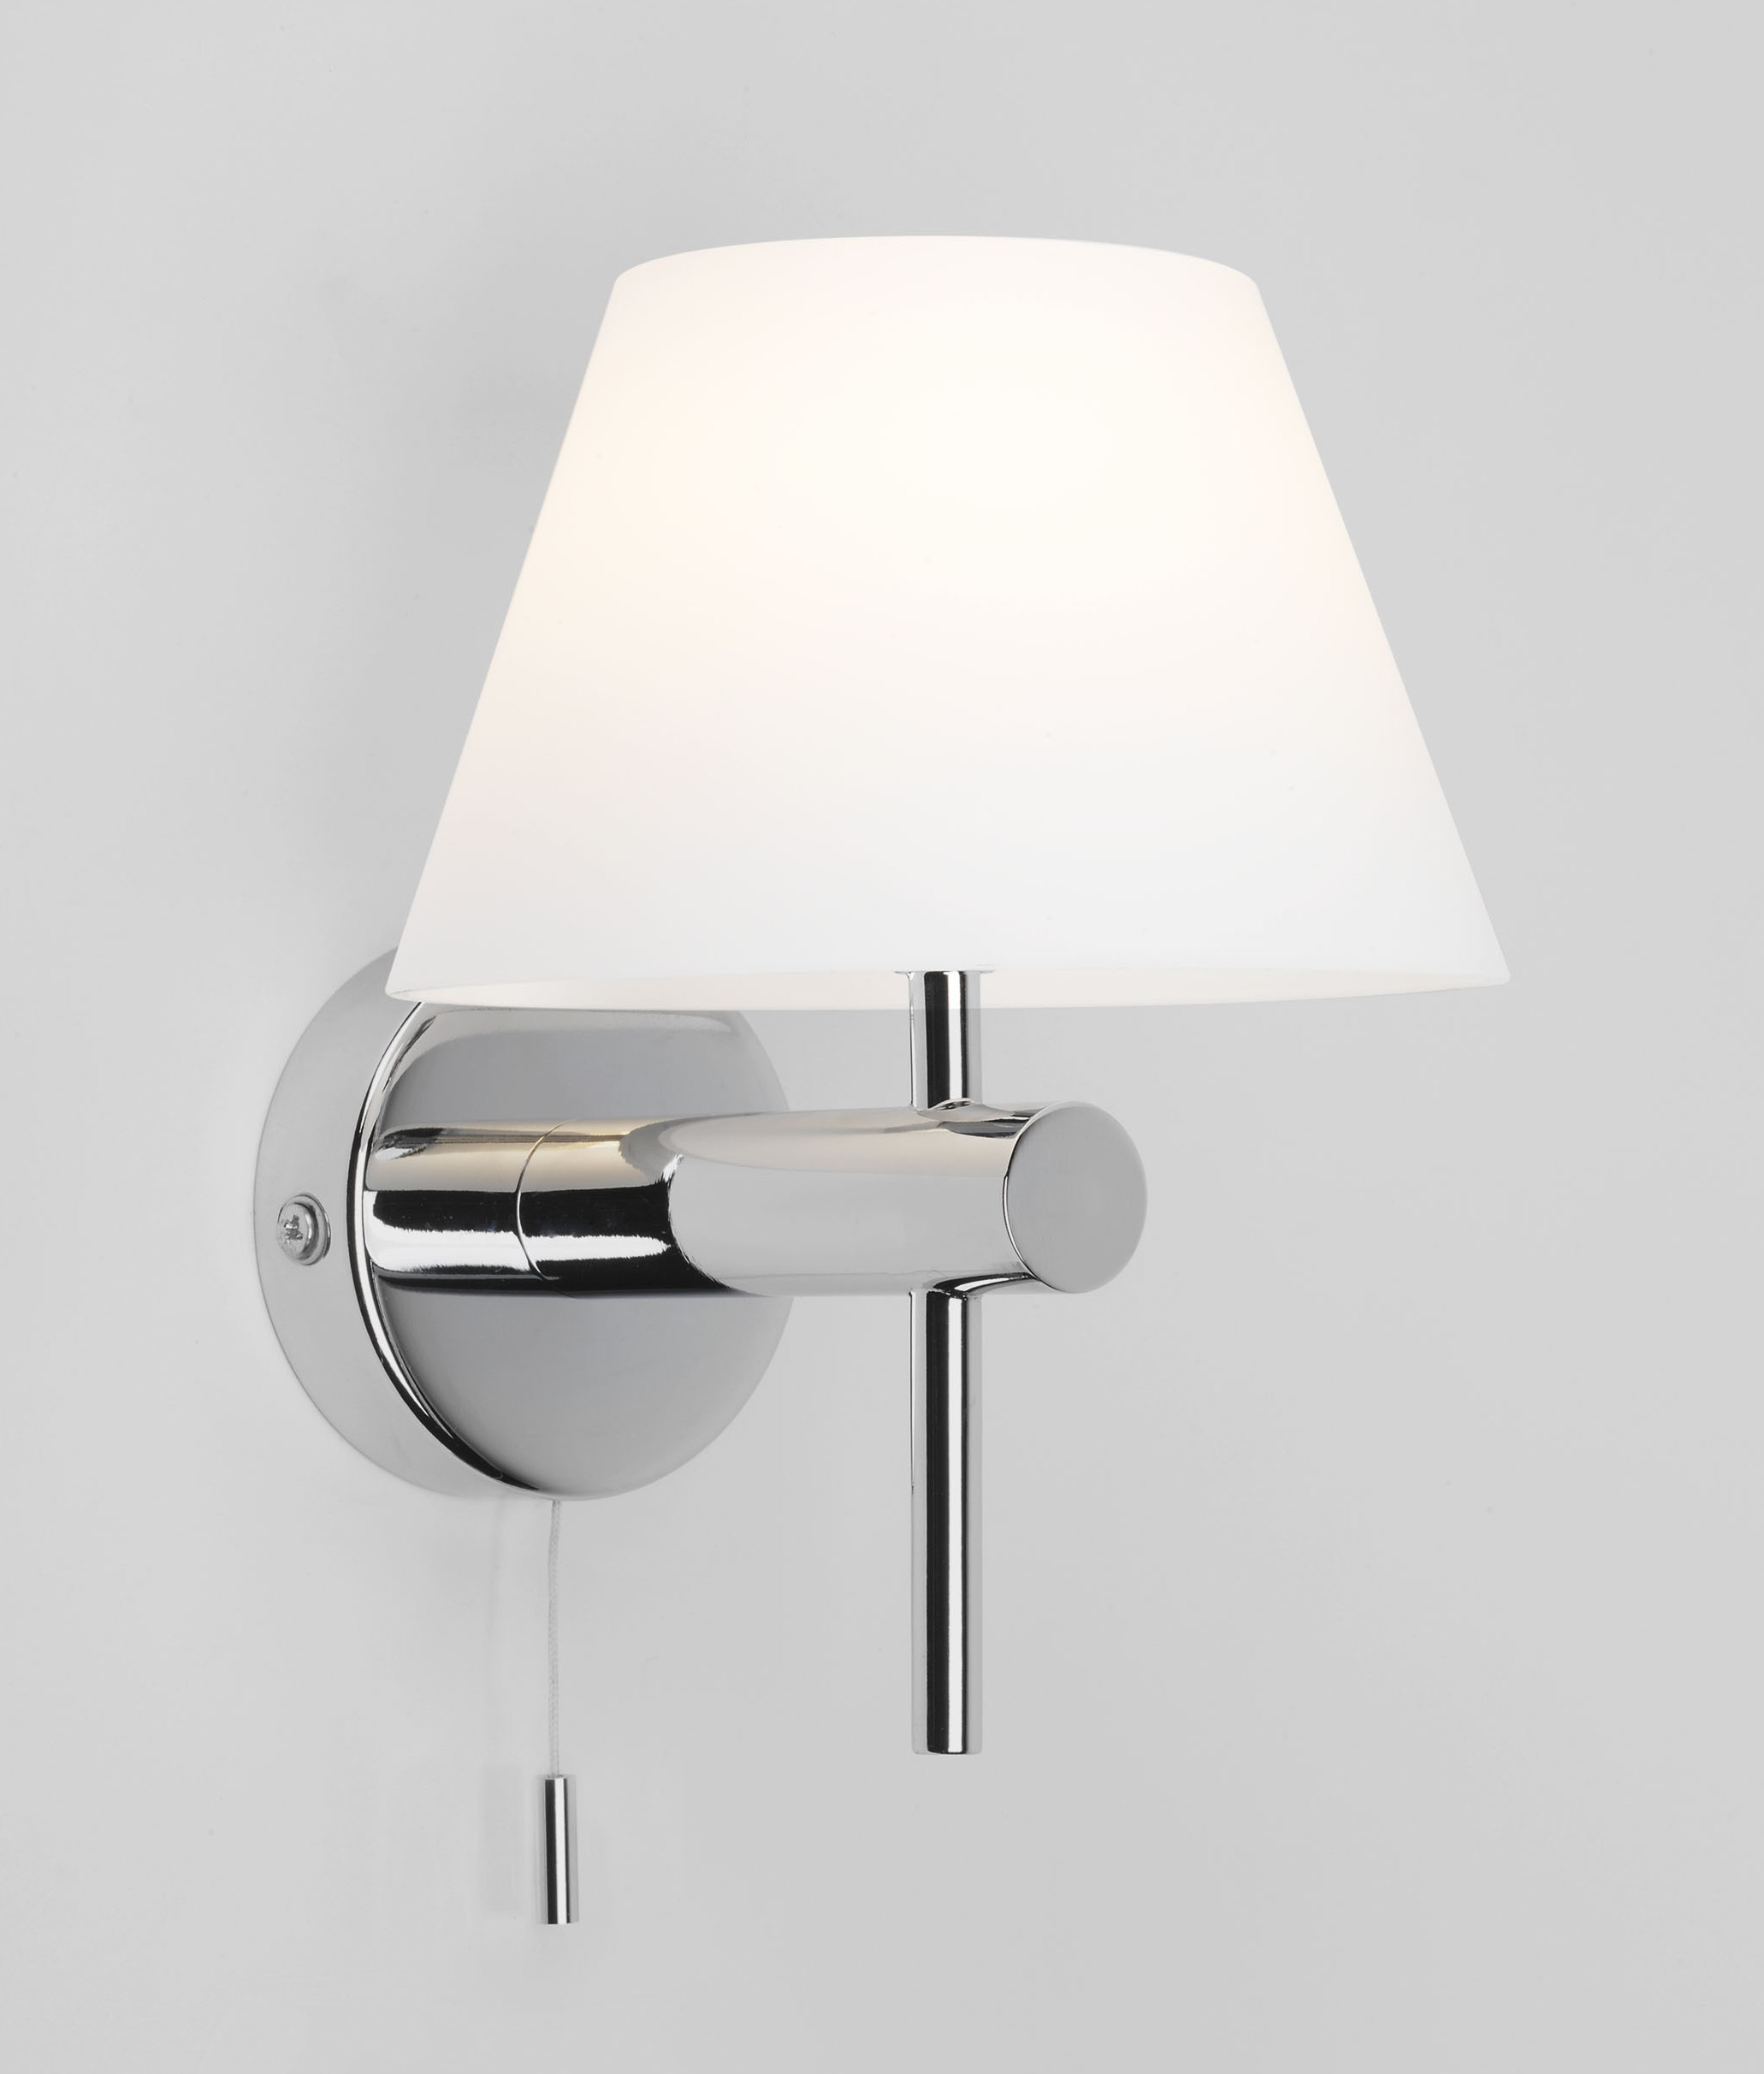 Bathroom Safe Wall Light With Glass Coolie Shade And Pullcord